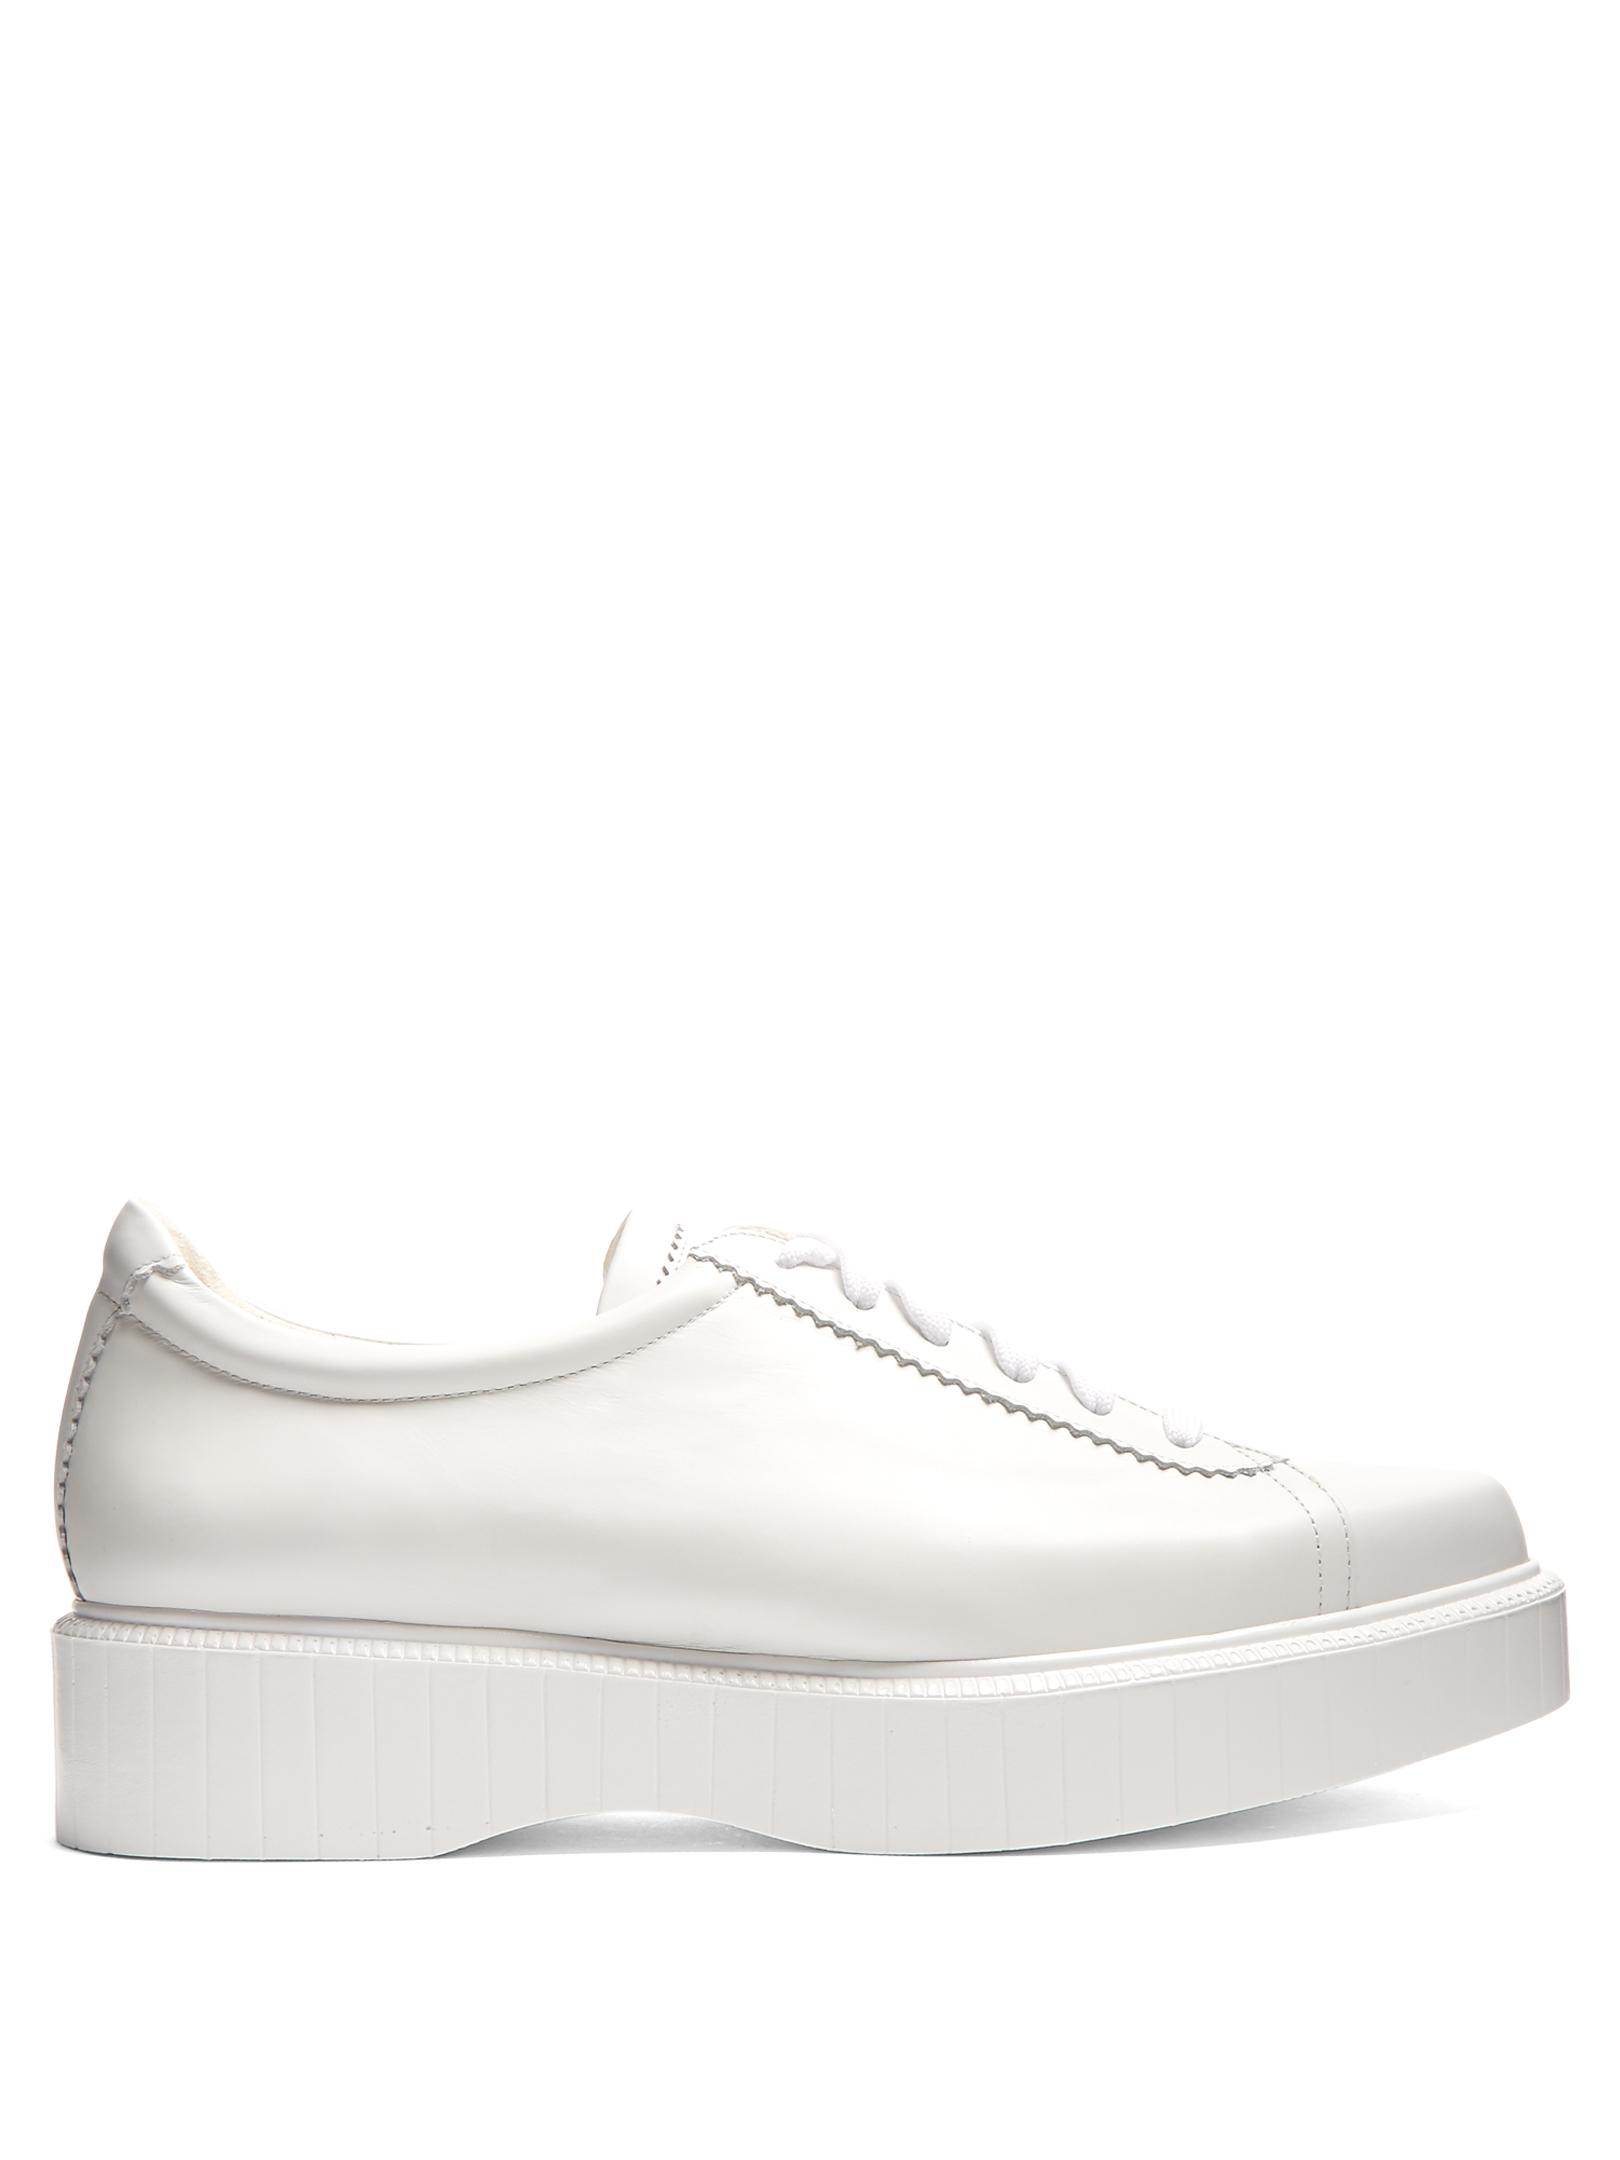 Robert Clergerie Leather Trainers eXcogdr3g